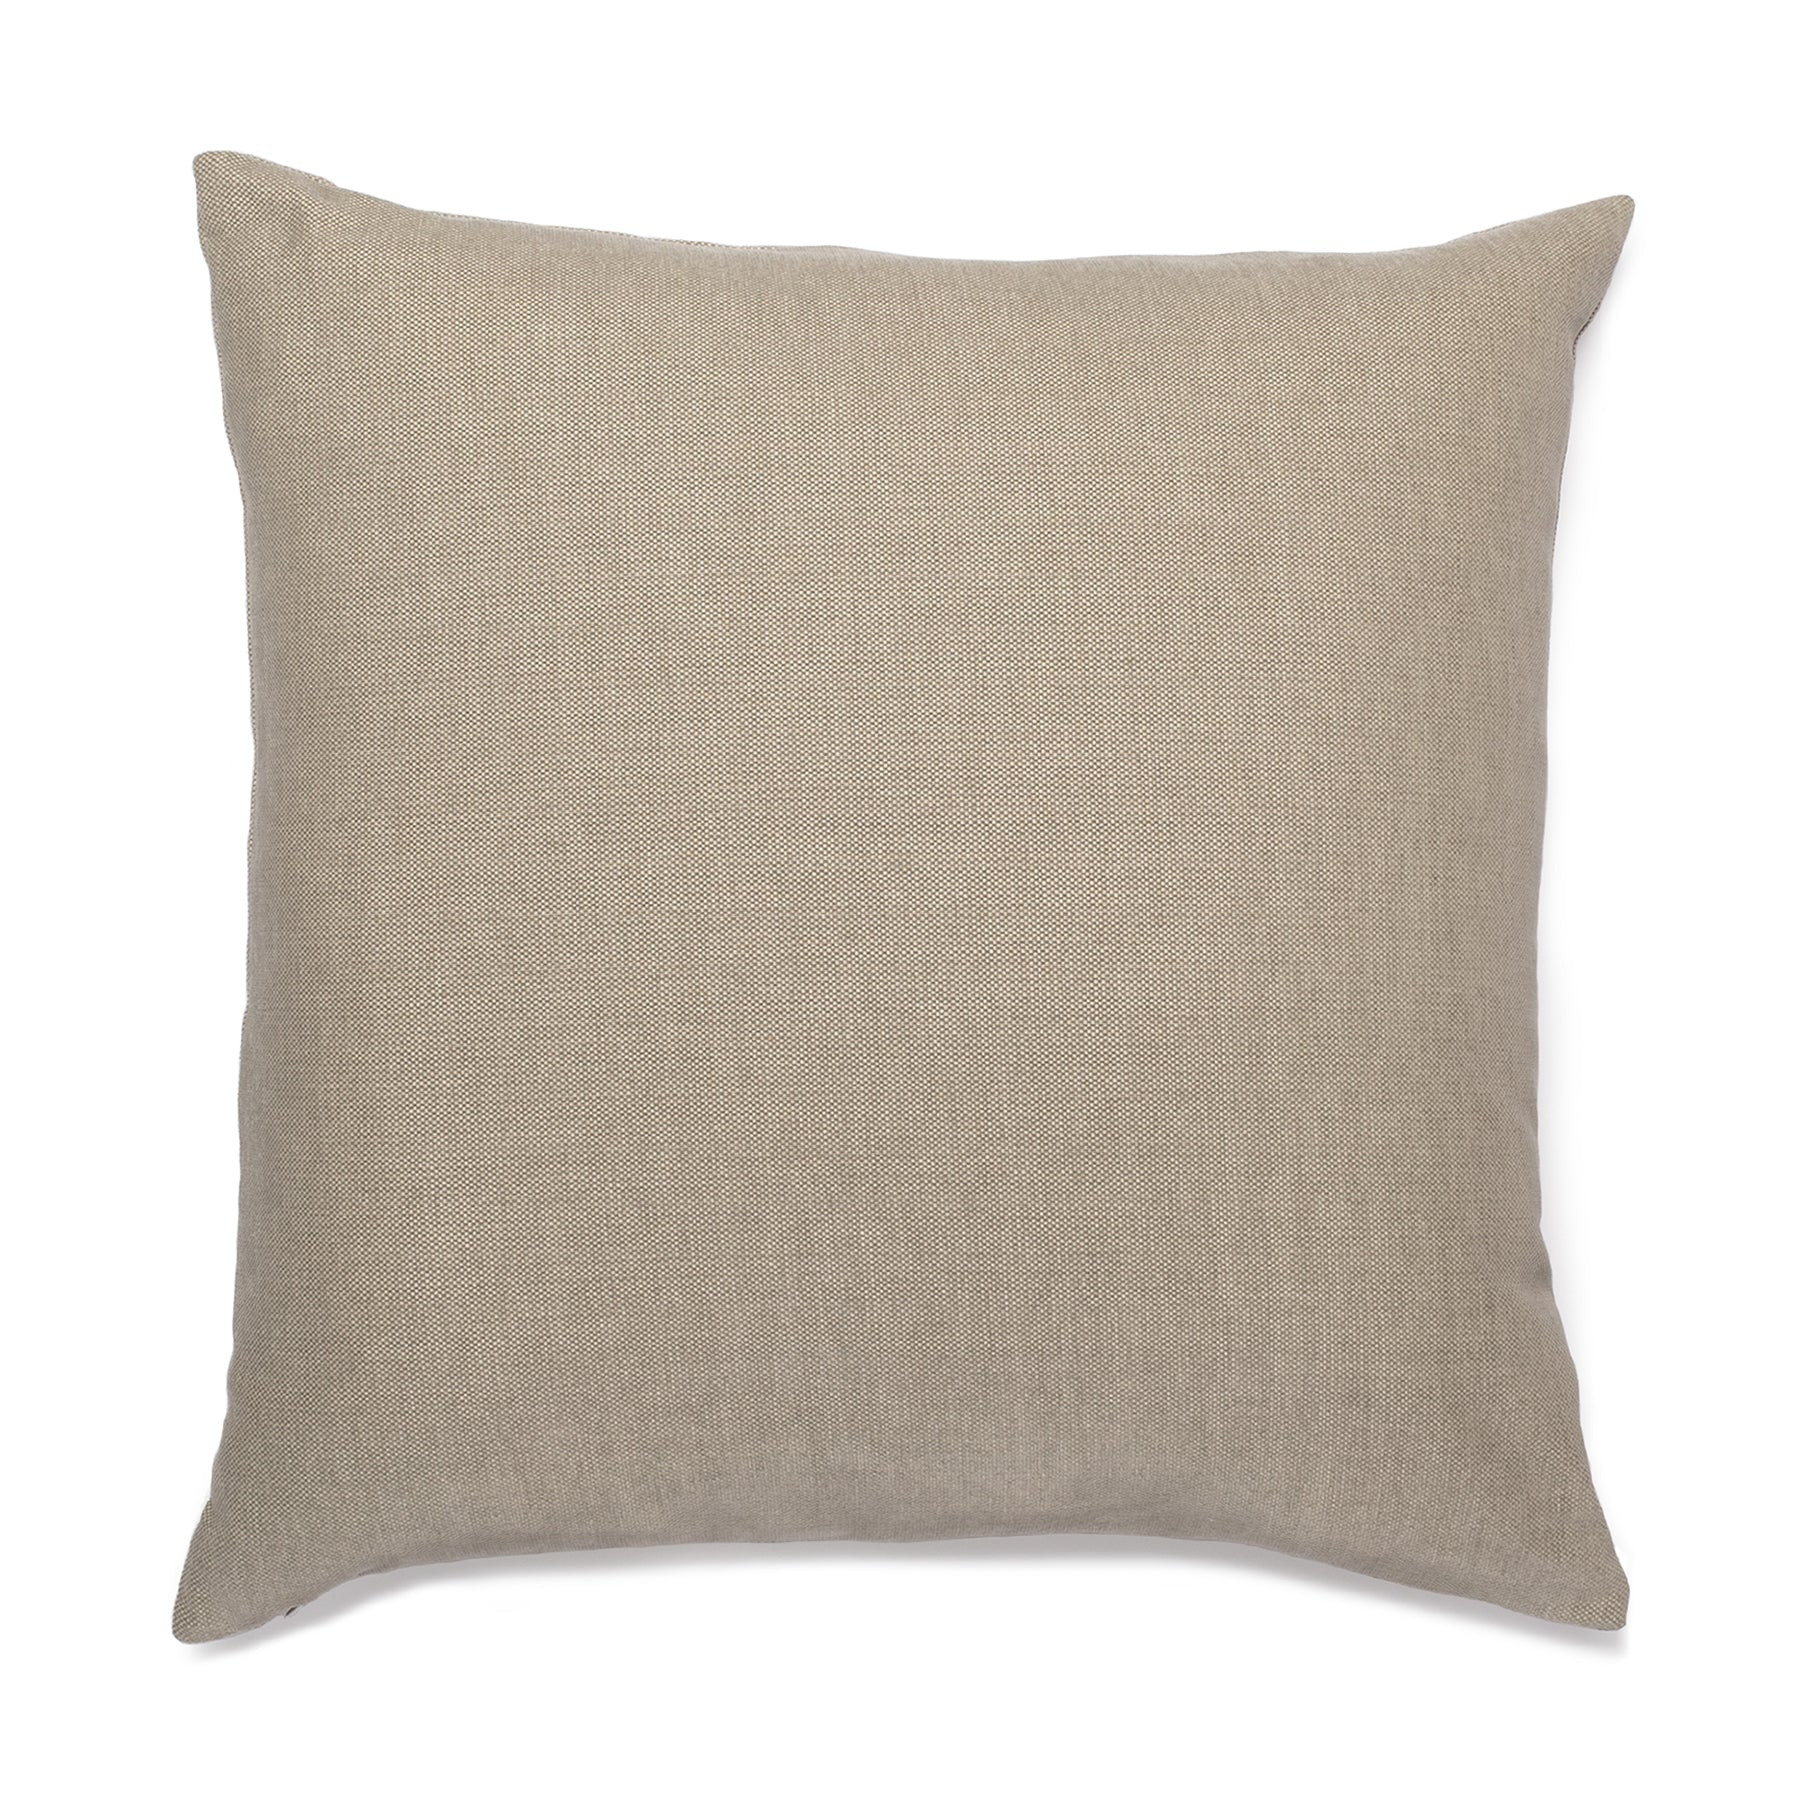 Plush Crush Pillow in Bleached Oak Zoom Image 1